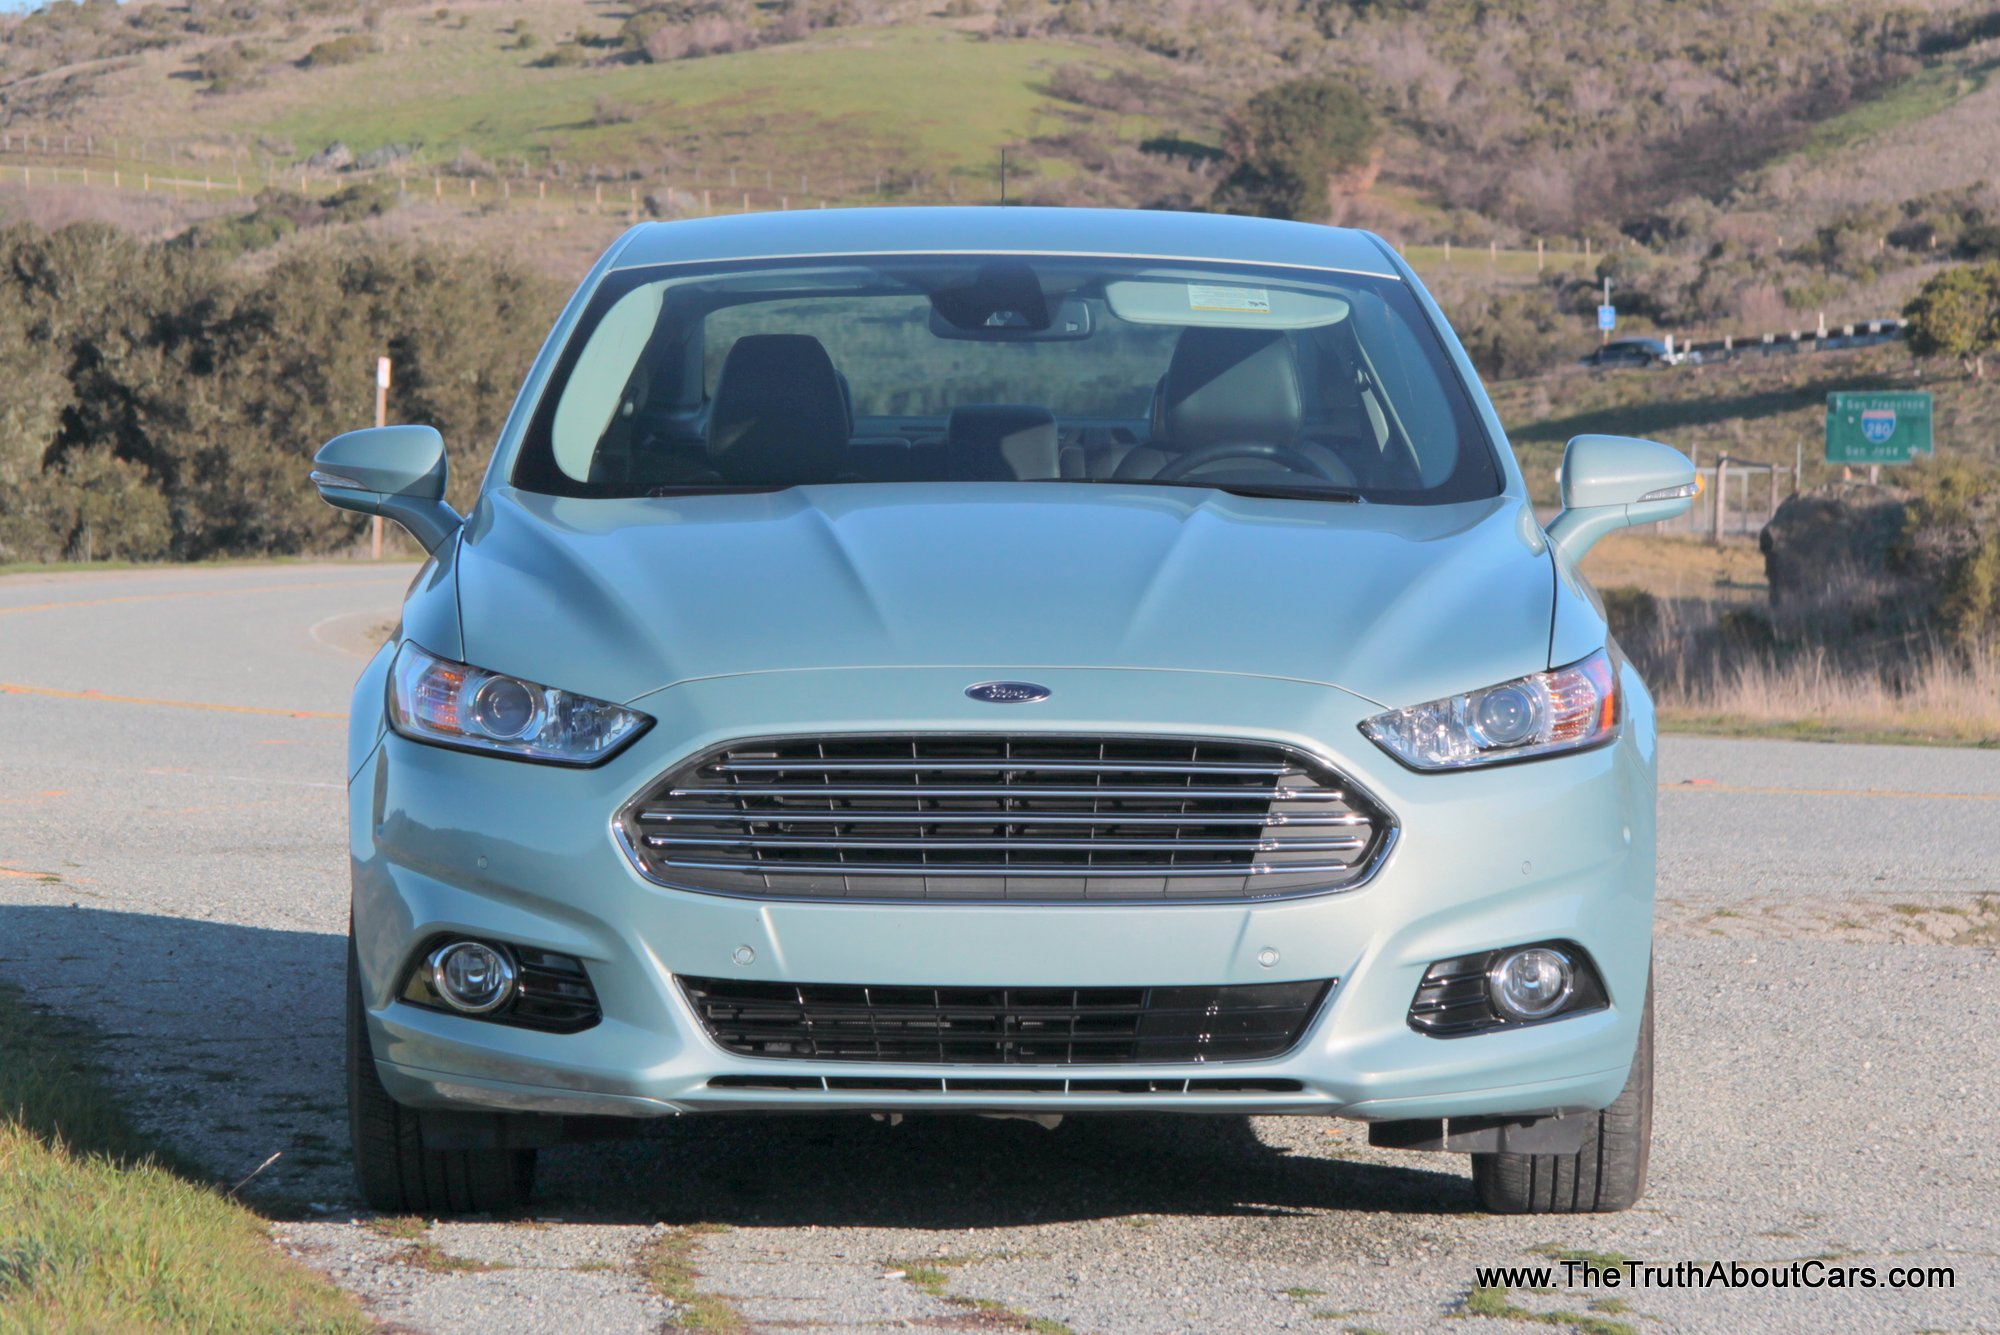 2013 ford fusion hybrid exterior front picture courtesy of alex l. Cars Review. Best American Auto & Cars Review